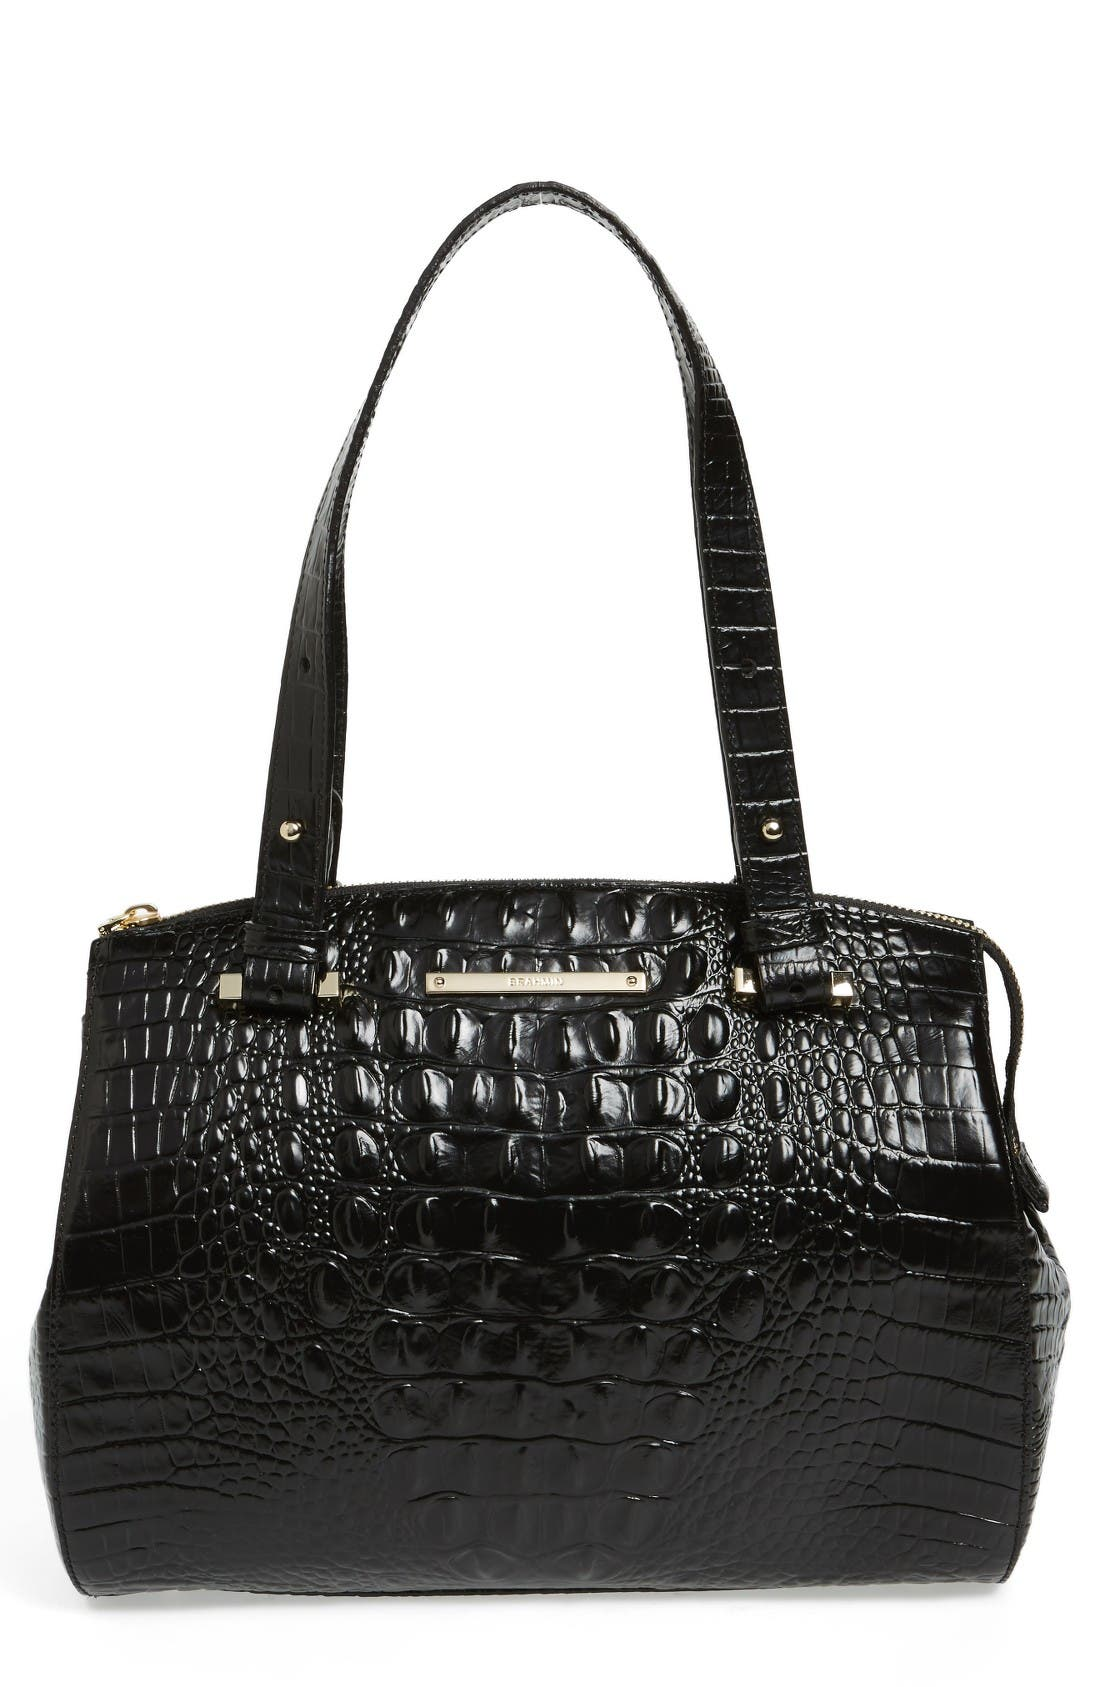 Alternate Image 1 Selected - Brahmin Small Alice Melbourne Leather Satchel